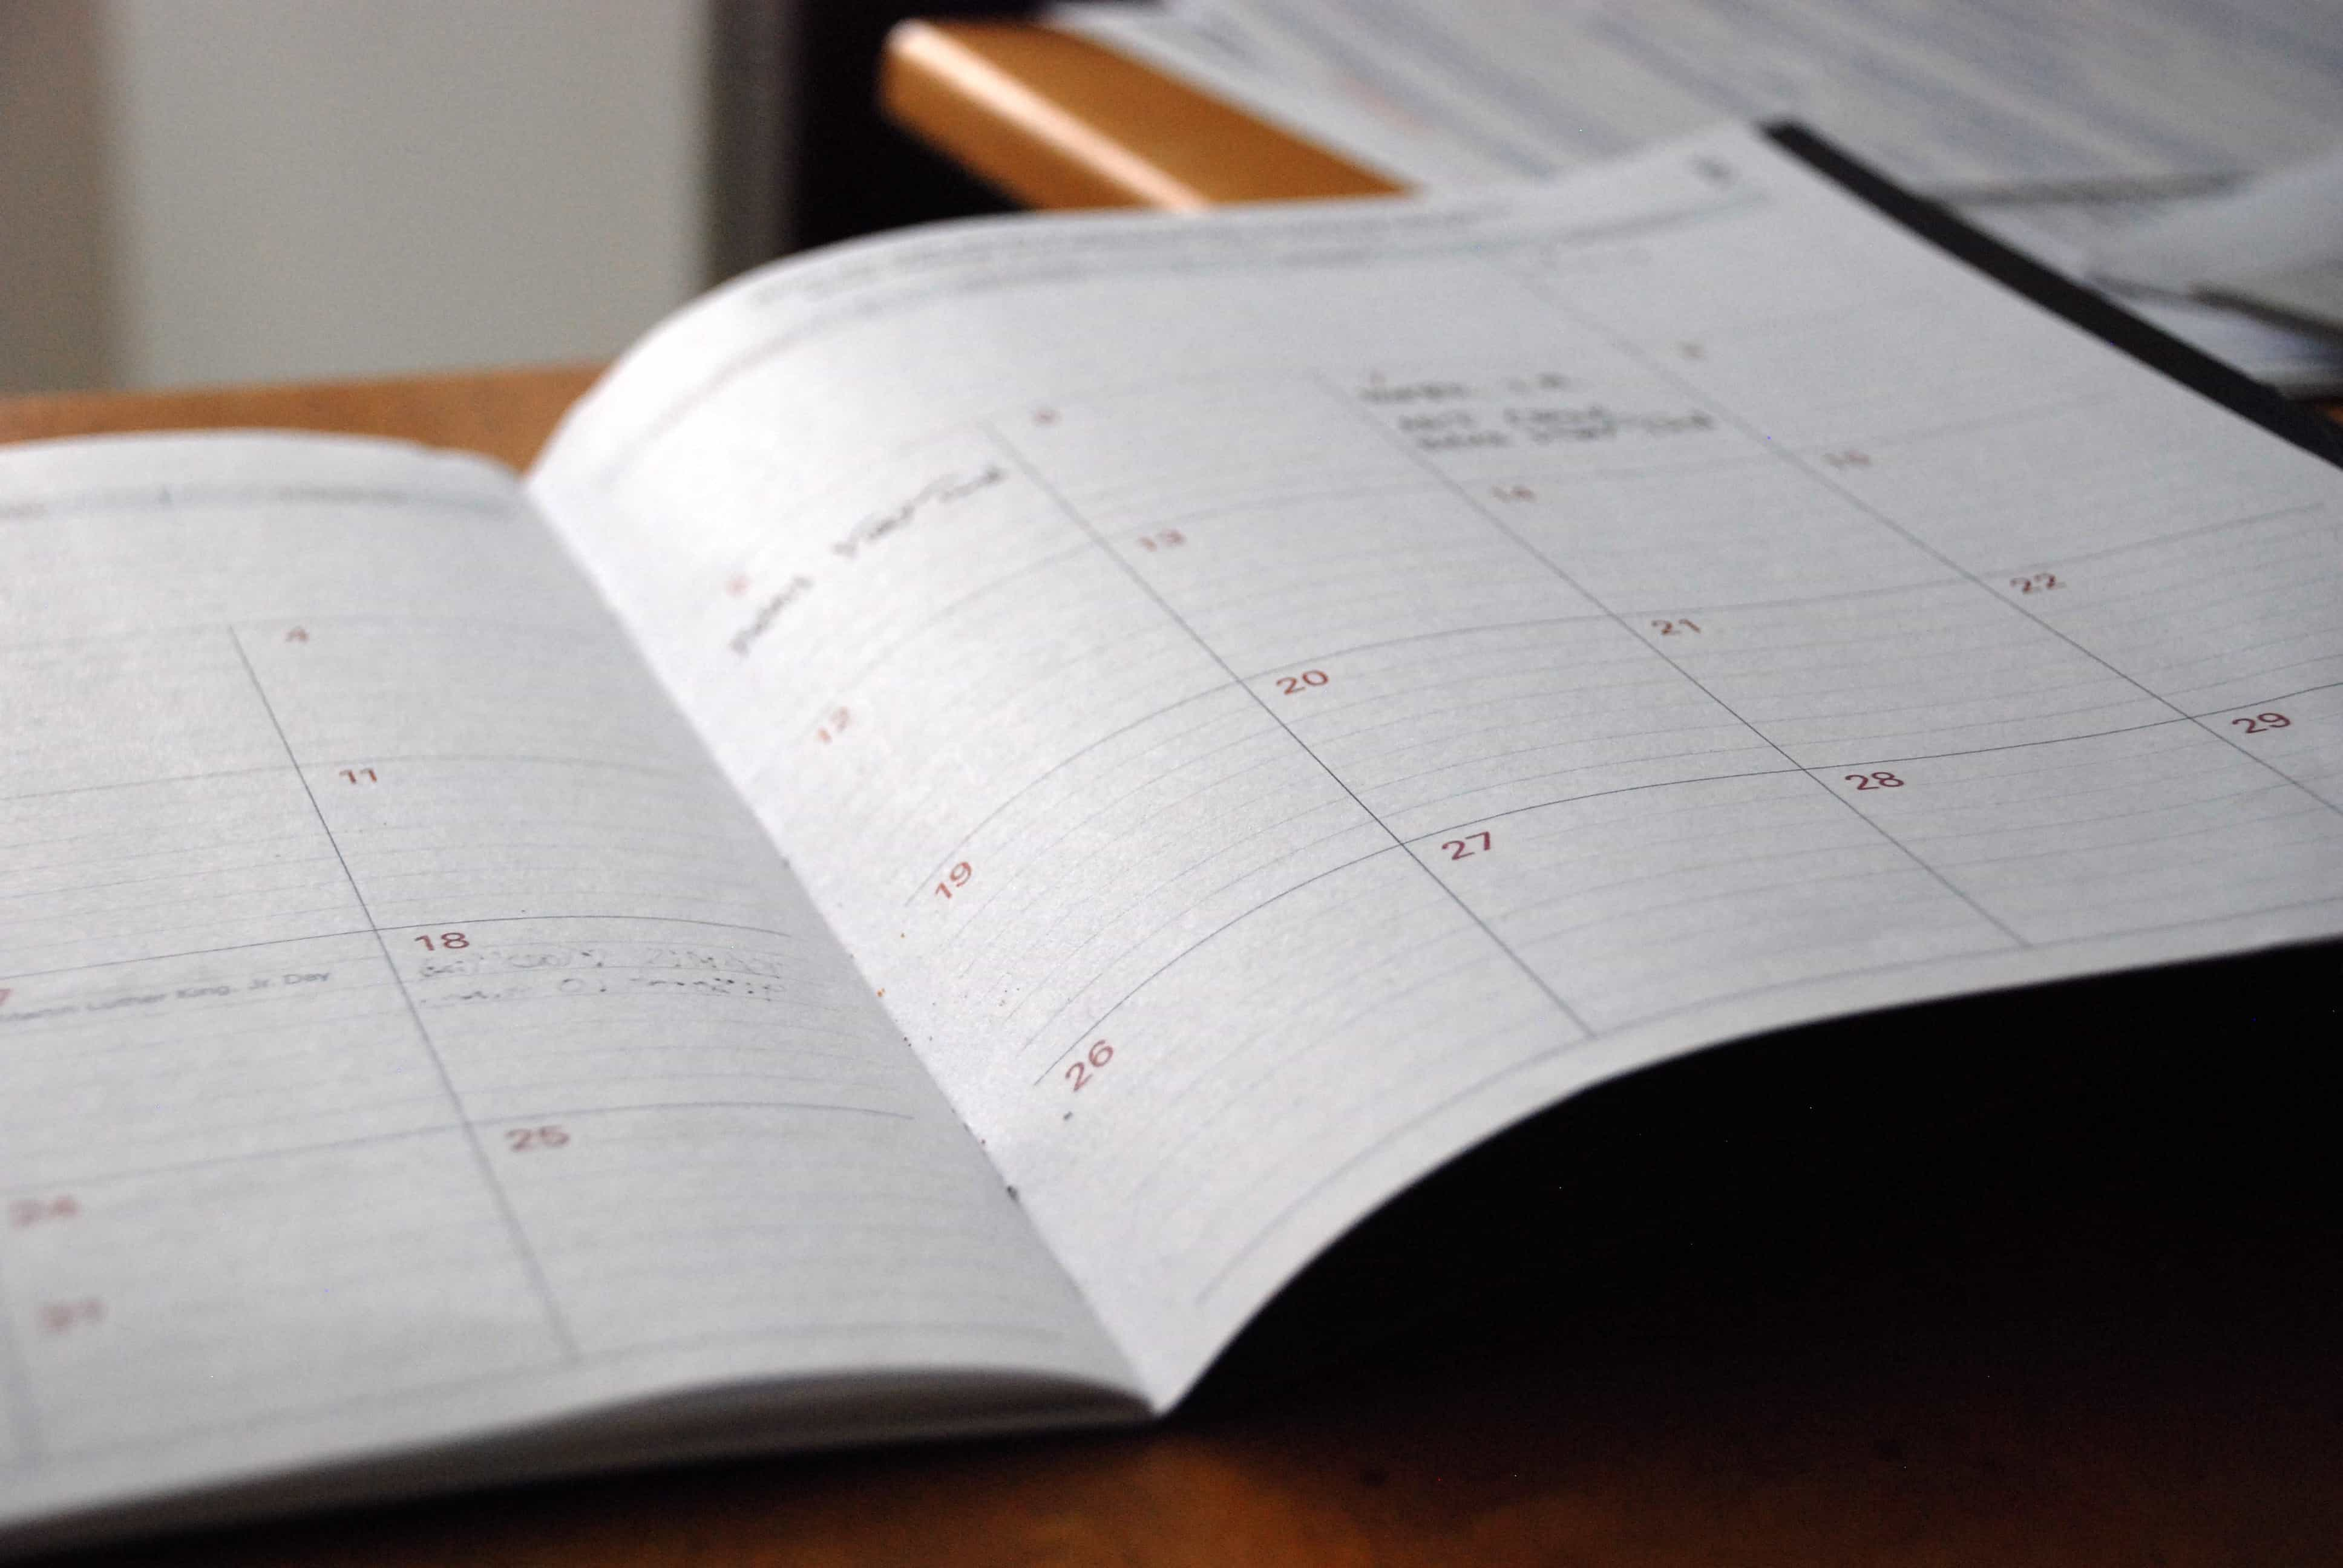 Use of Calendar for more productivity